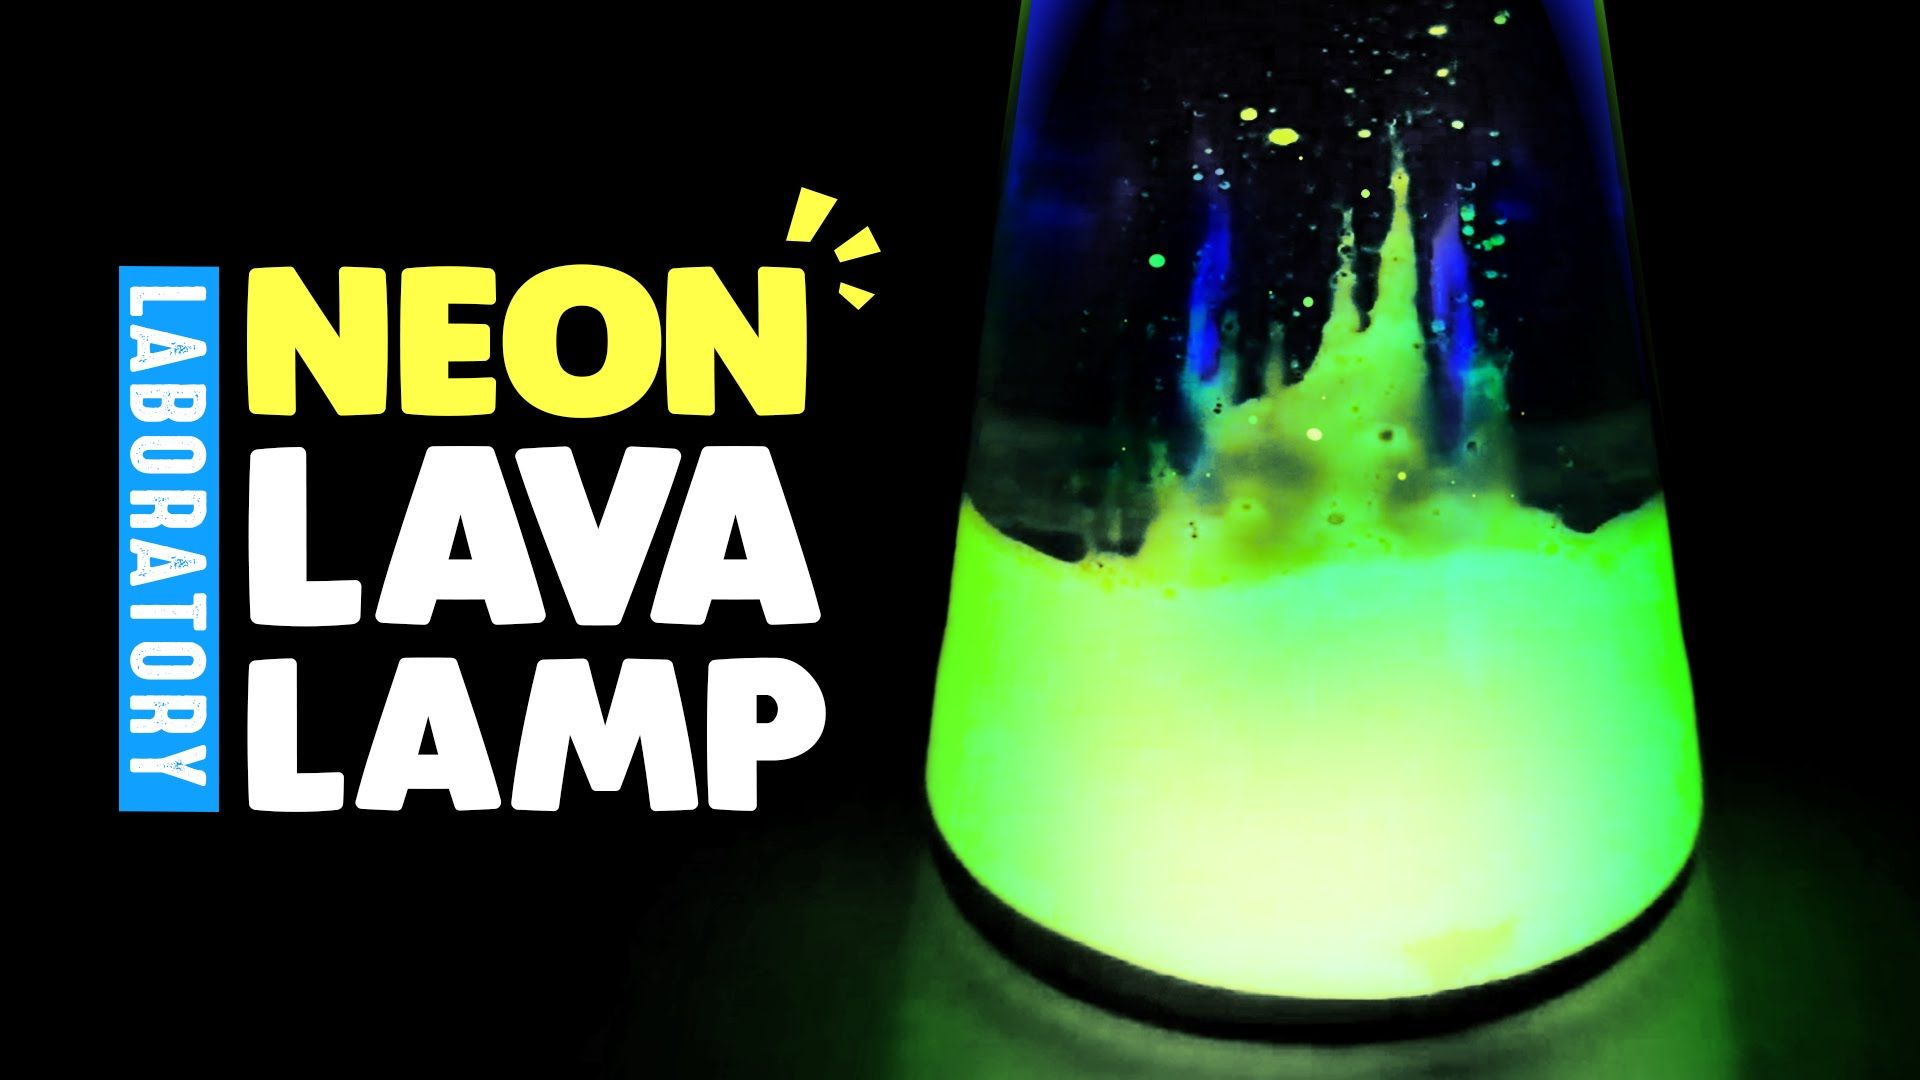 How To Make A Homemade Neon Lava Lamp Laboratory Summer Diy Projects Lava Lamp For Kids Summer Diy